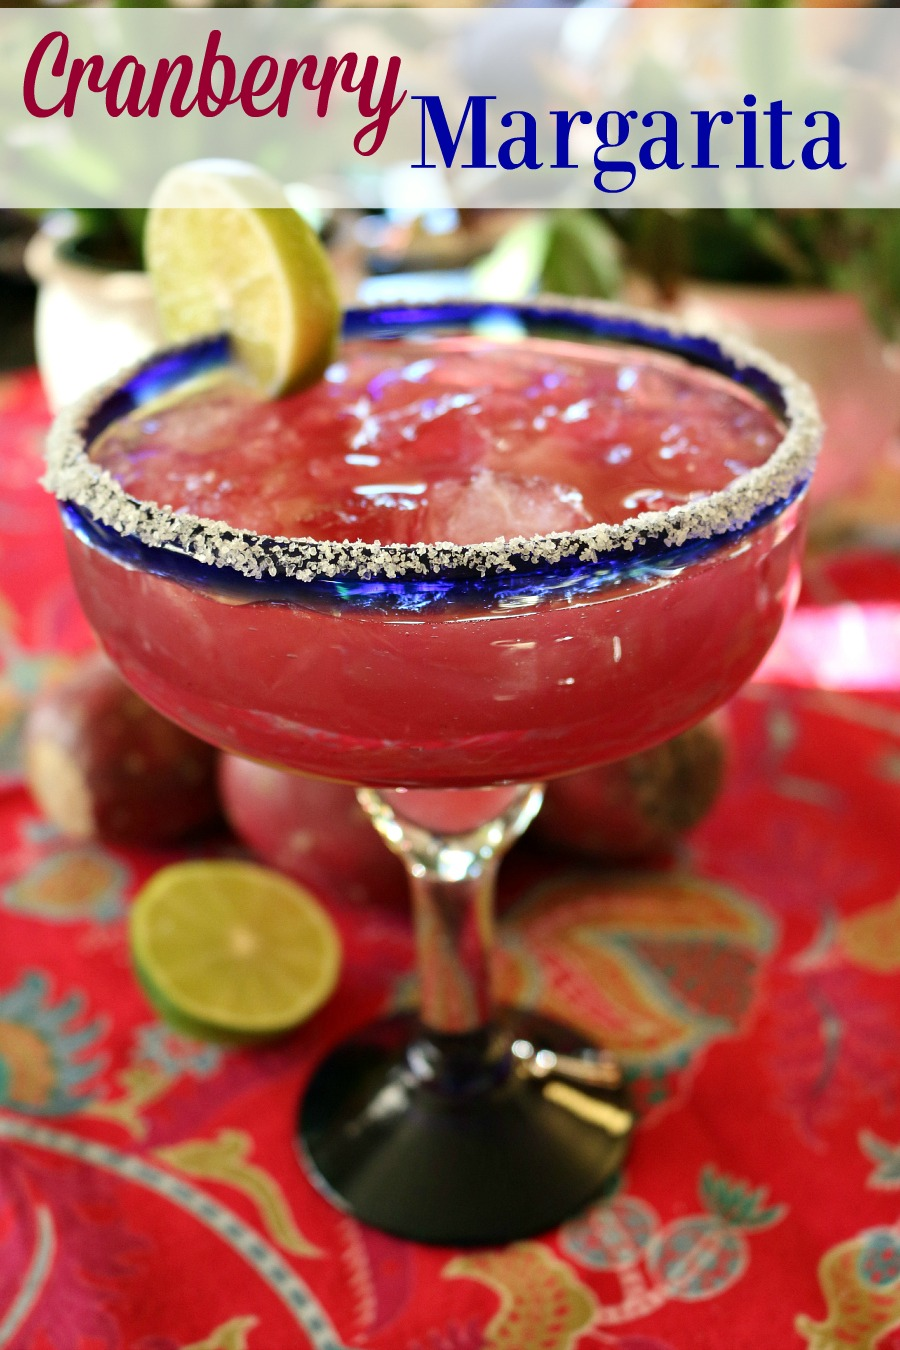 Perfect HOLIDAY COCKTAIL - CRANBERRY MARGARITA  find this delicious cocktail recipe at www.ceceliasgoodstuff.com